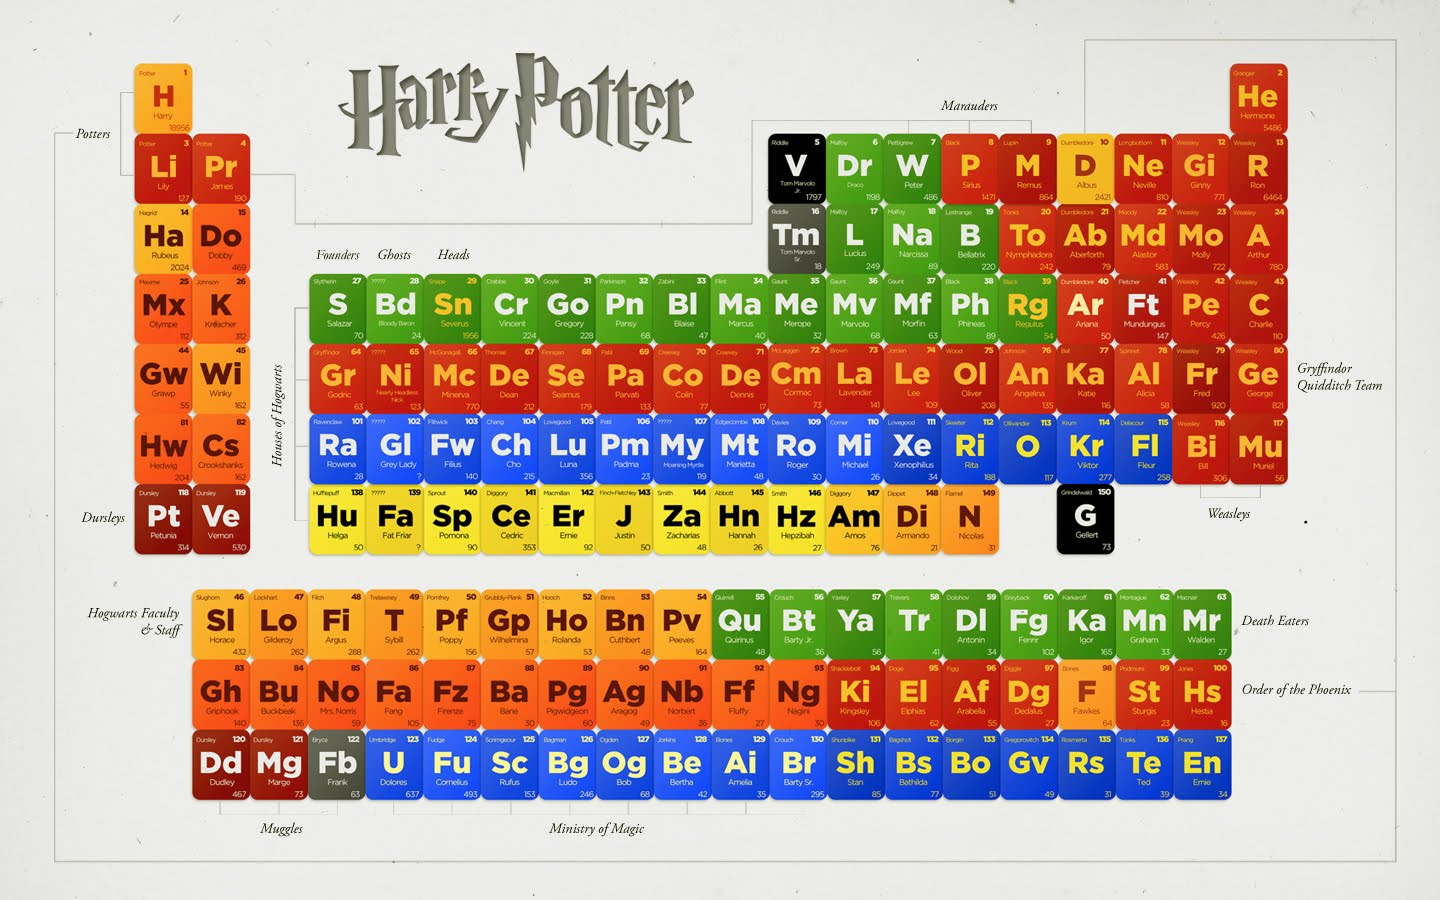 Popped culture the periodic table of harry potter the periodic table of harry potter gamestrikefo Image collections